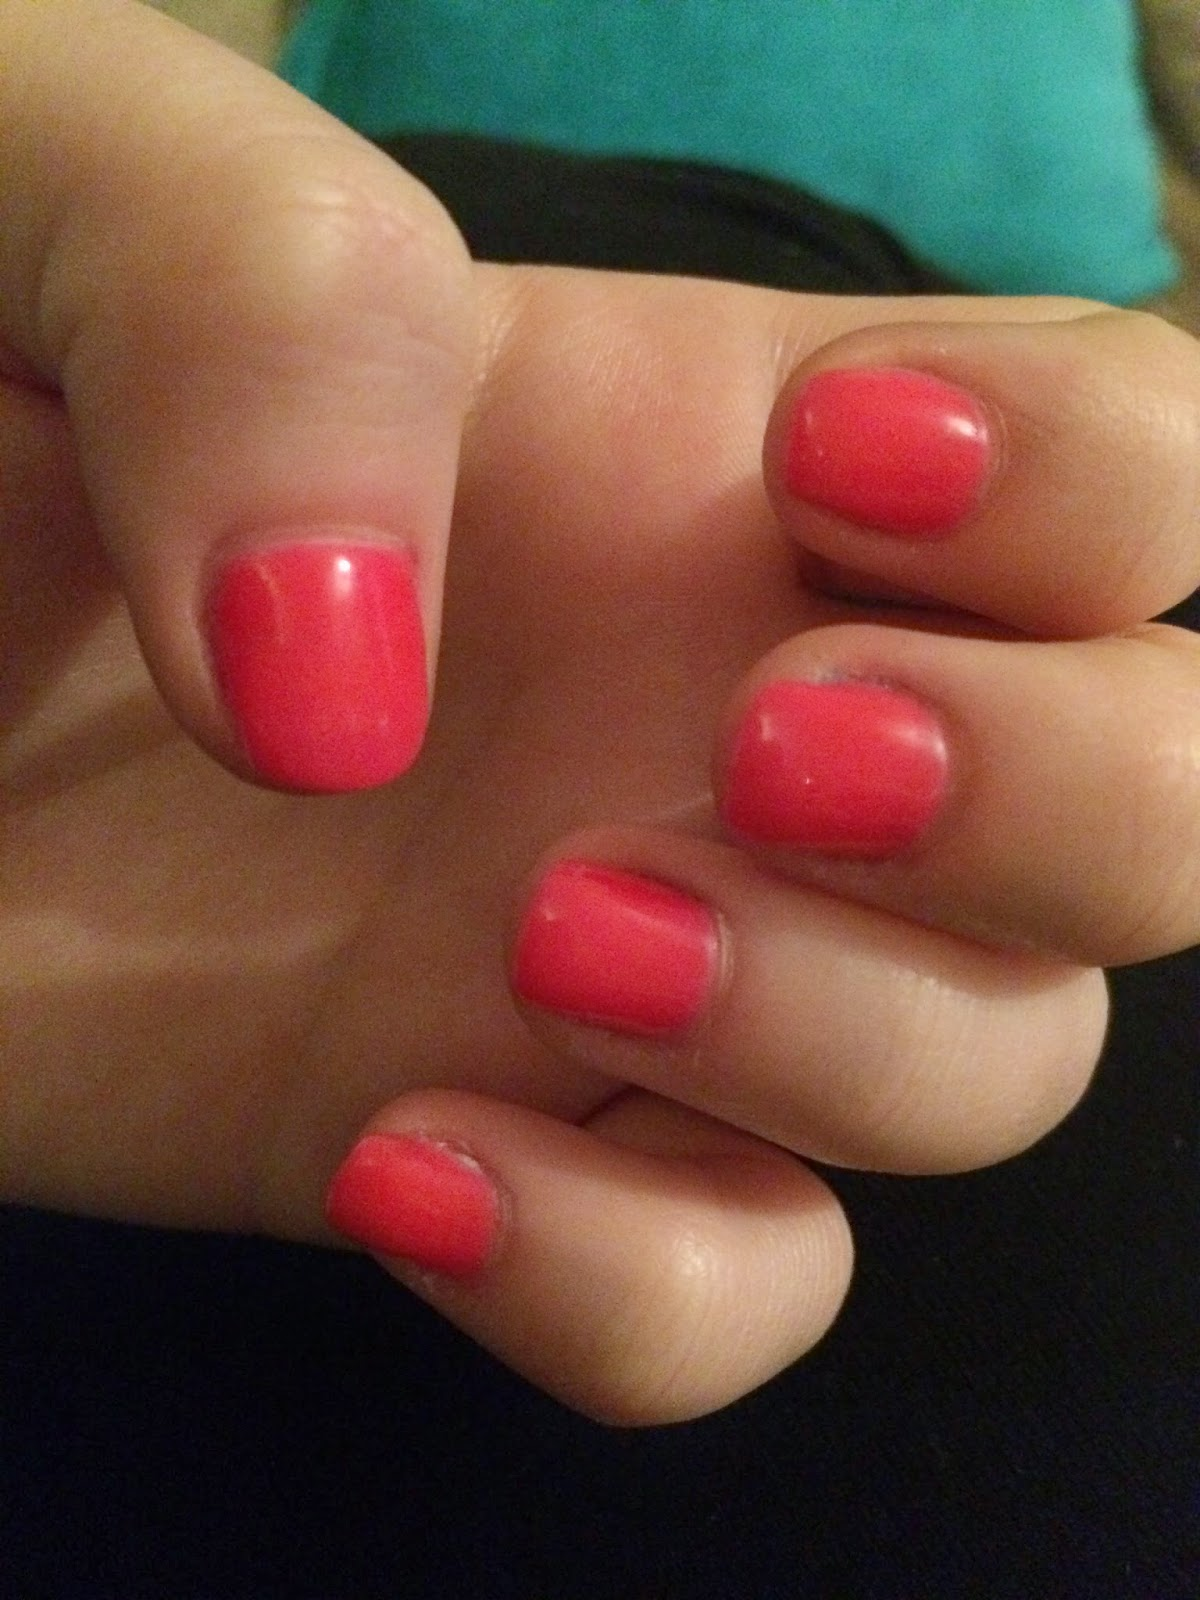 orly gel fx passion fruit